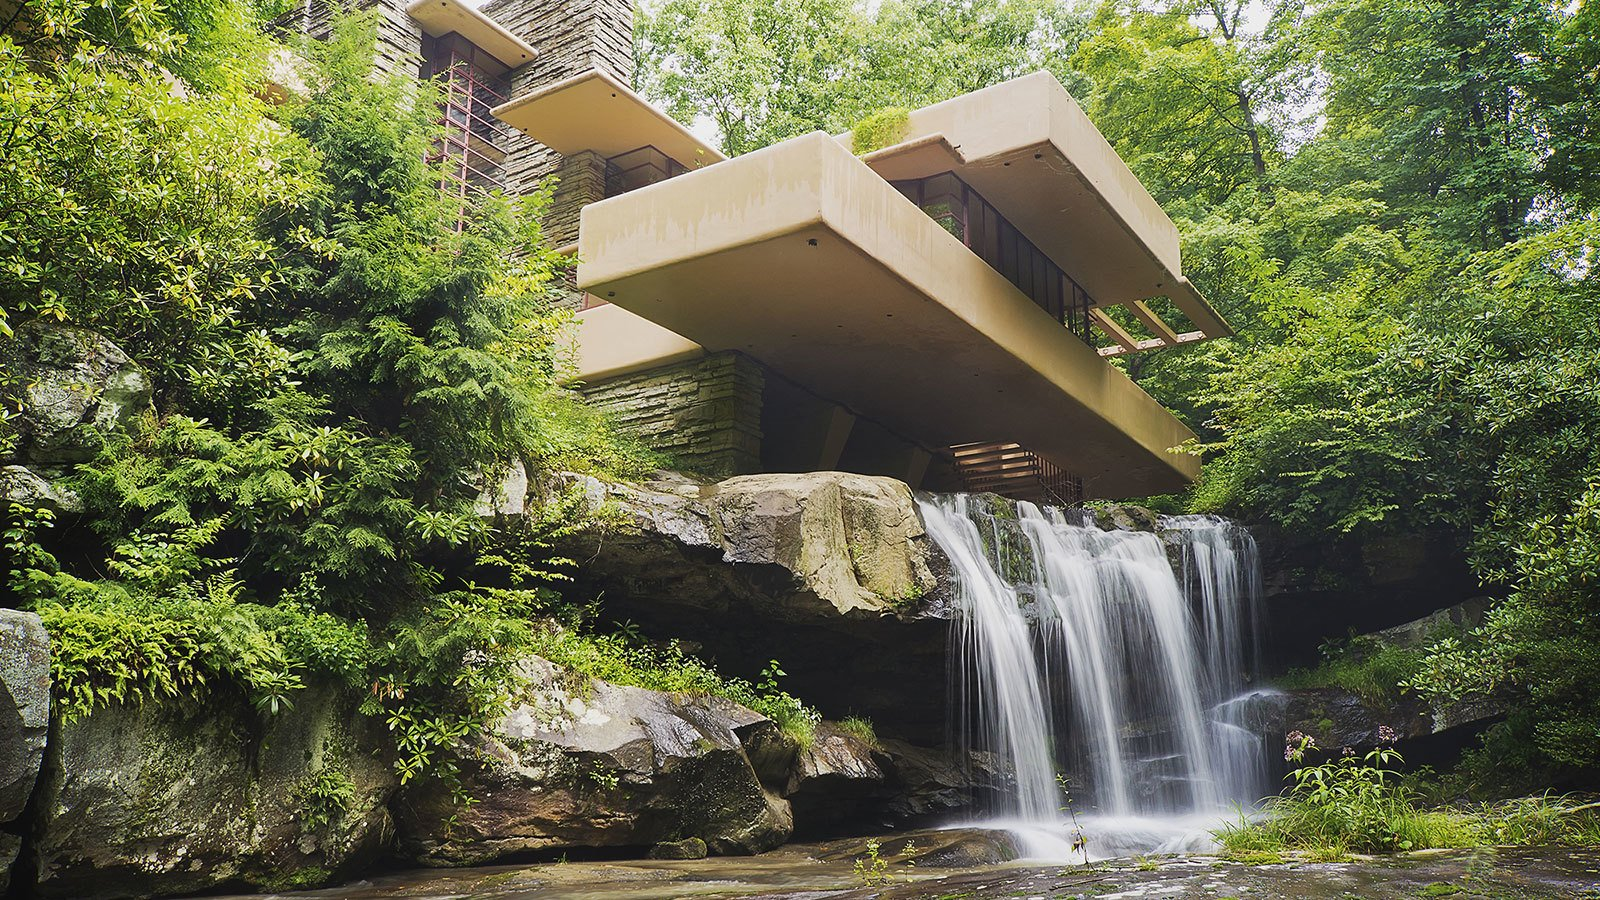 7 Fallingwater Mill Run Pennsylvania Frank Lloyd Wright 1937